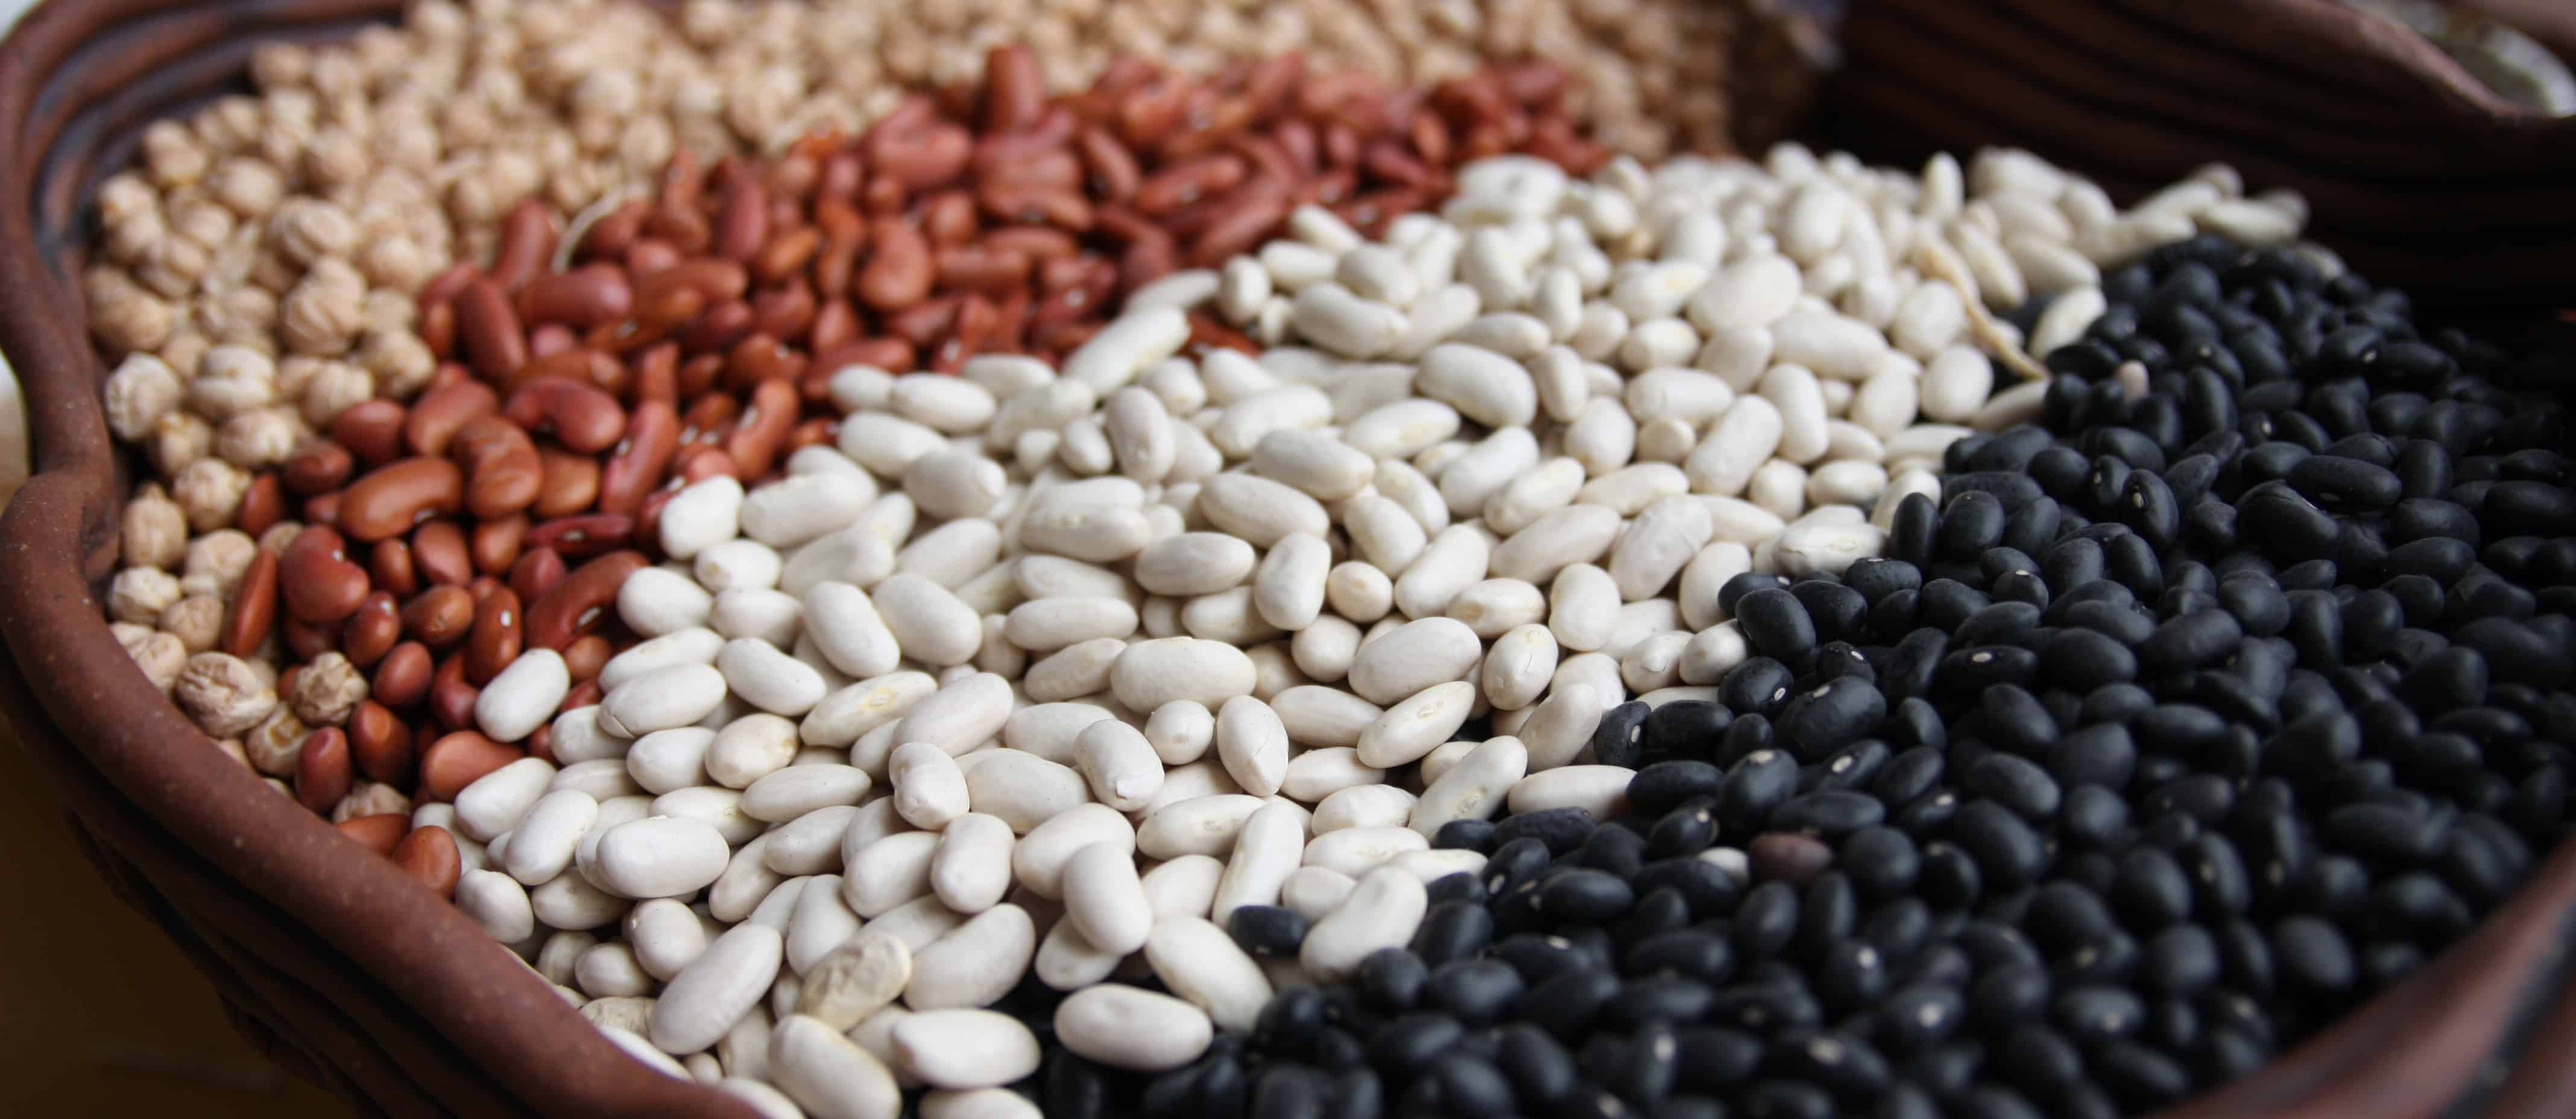 Why You Should Eat More Beans